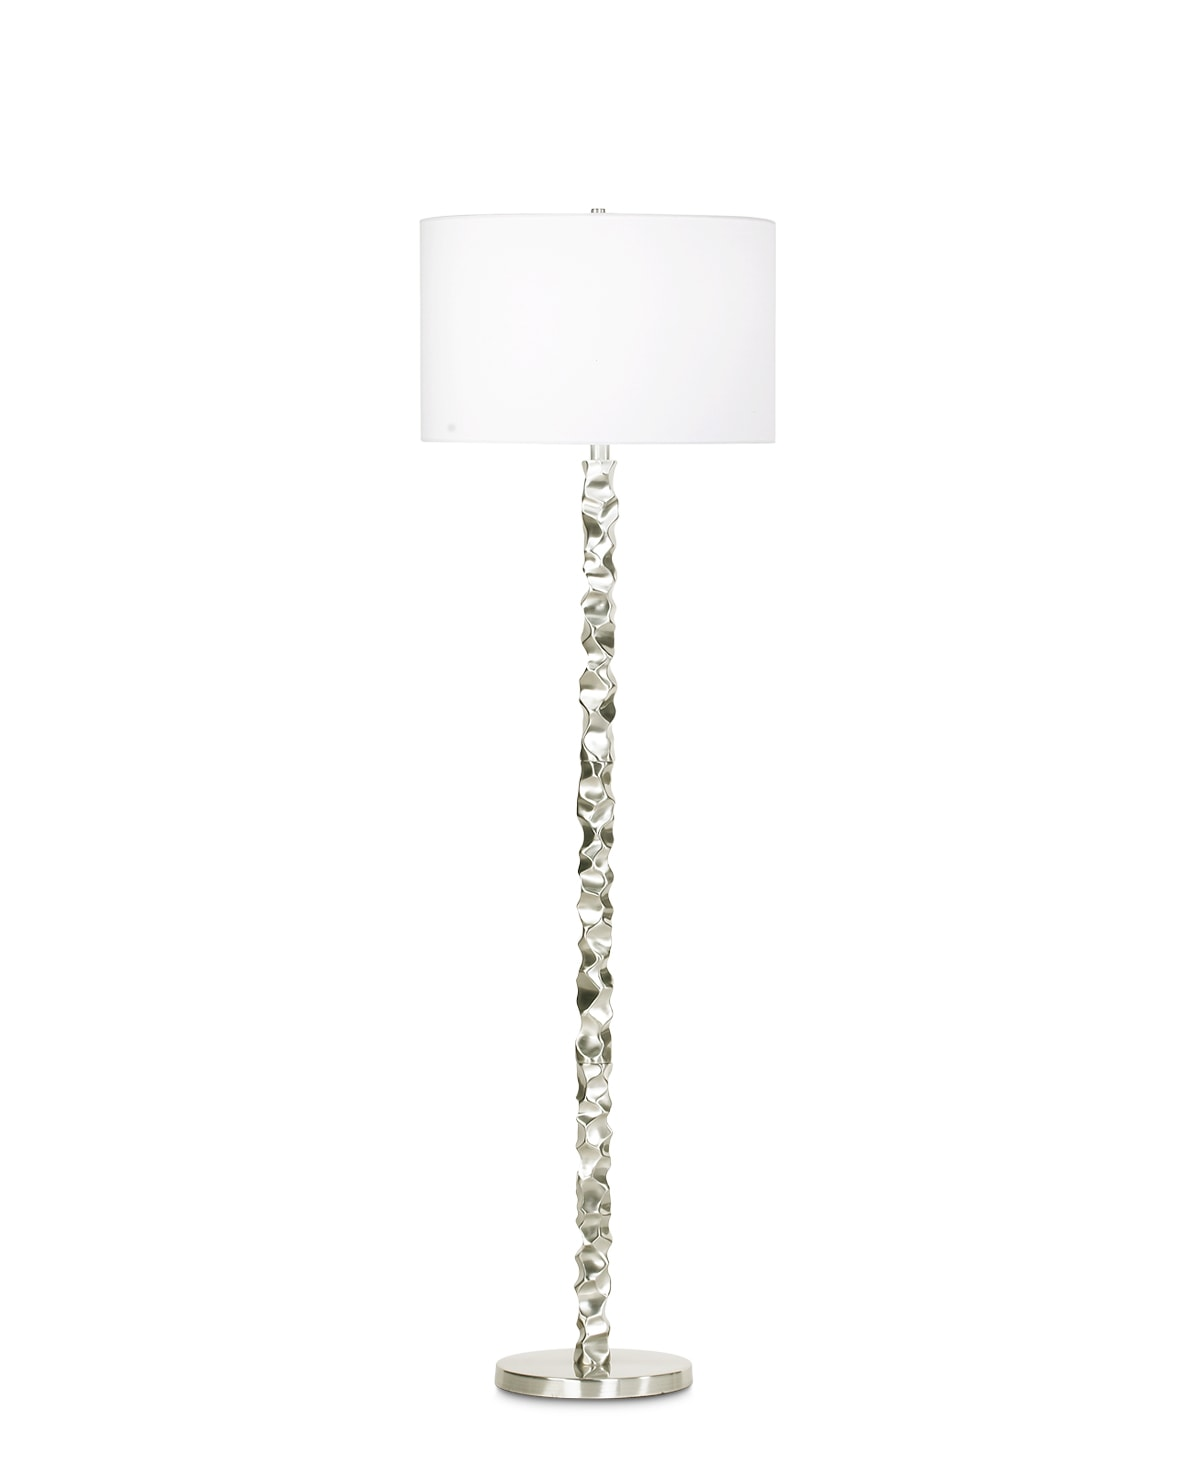 FlowDecor Heather Floor Lamp in brass with brushed nickel finish and white linen drum shade (# 3705)